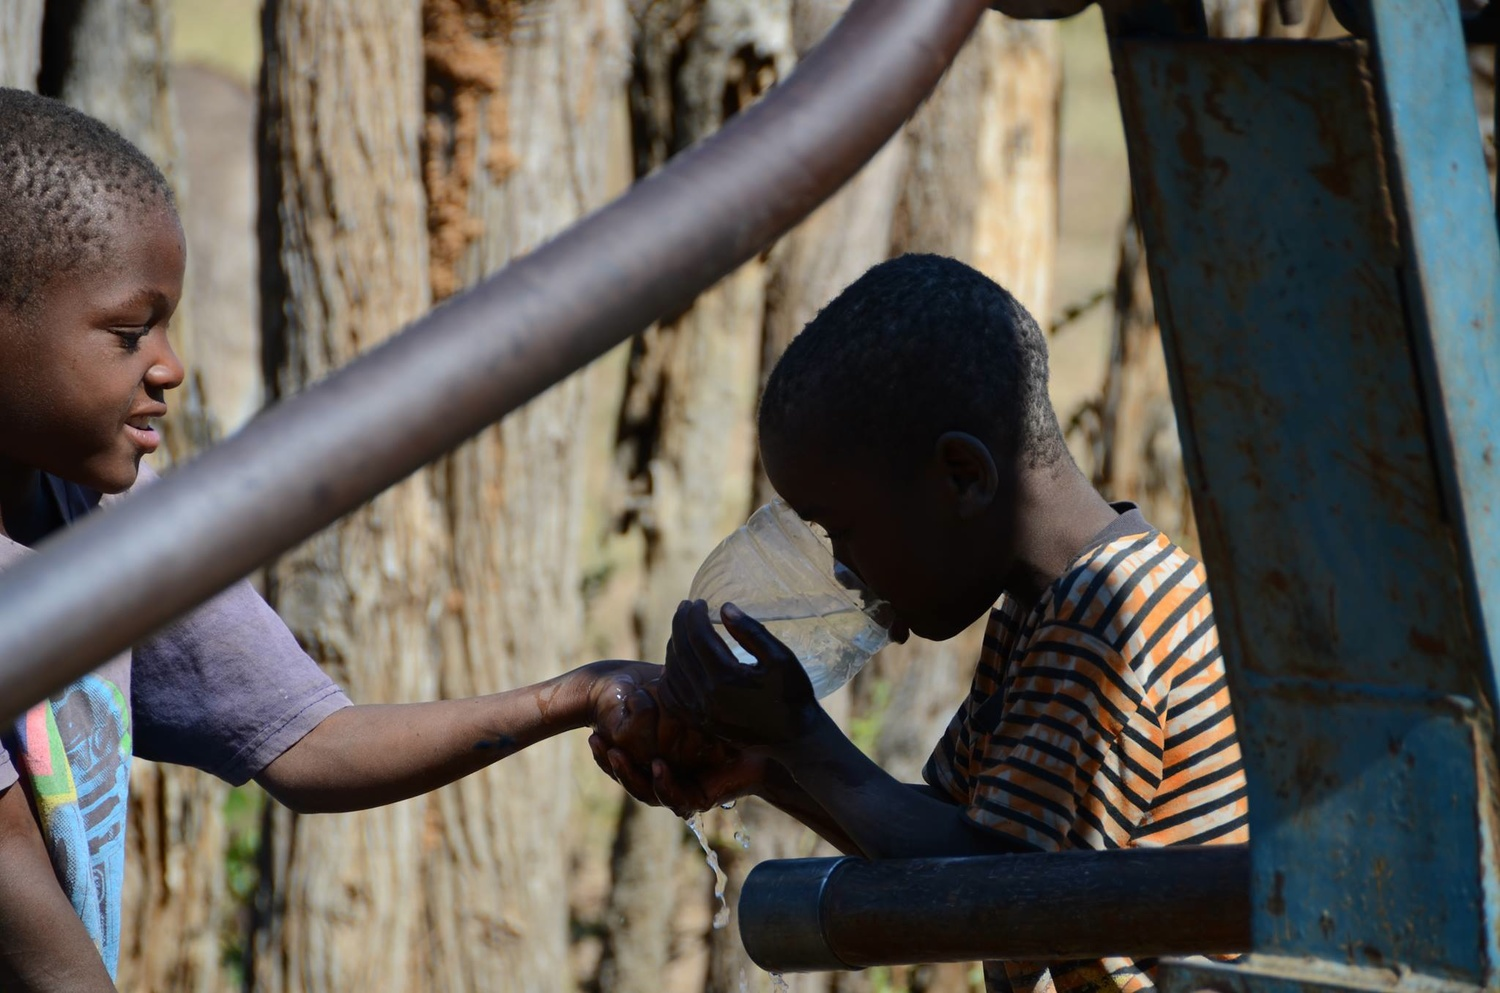 On a hot day, young brothers stop by for a cool drink before watering the livestock that they attend to for their community. These wells are a water source for both the community and animals.